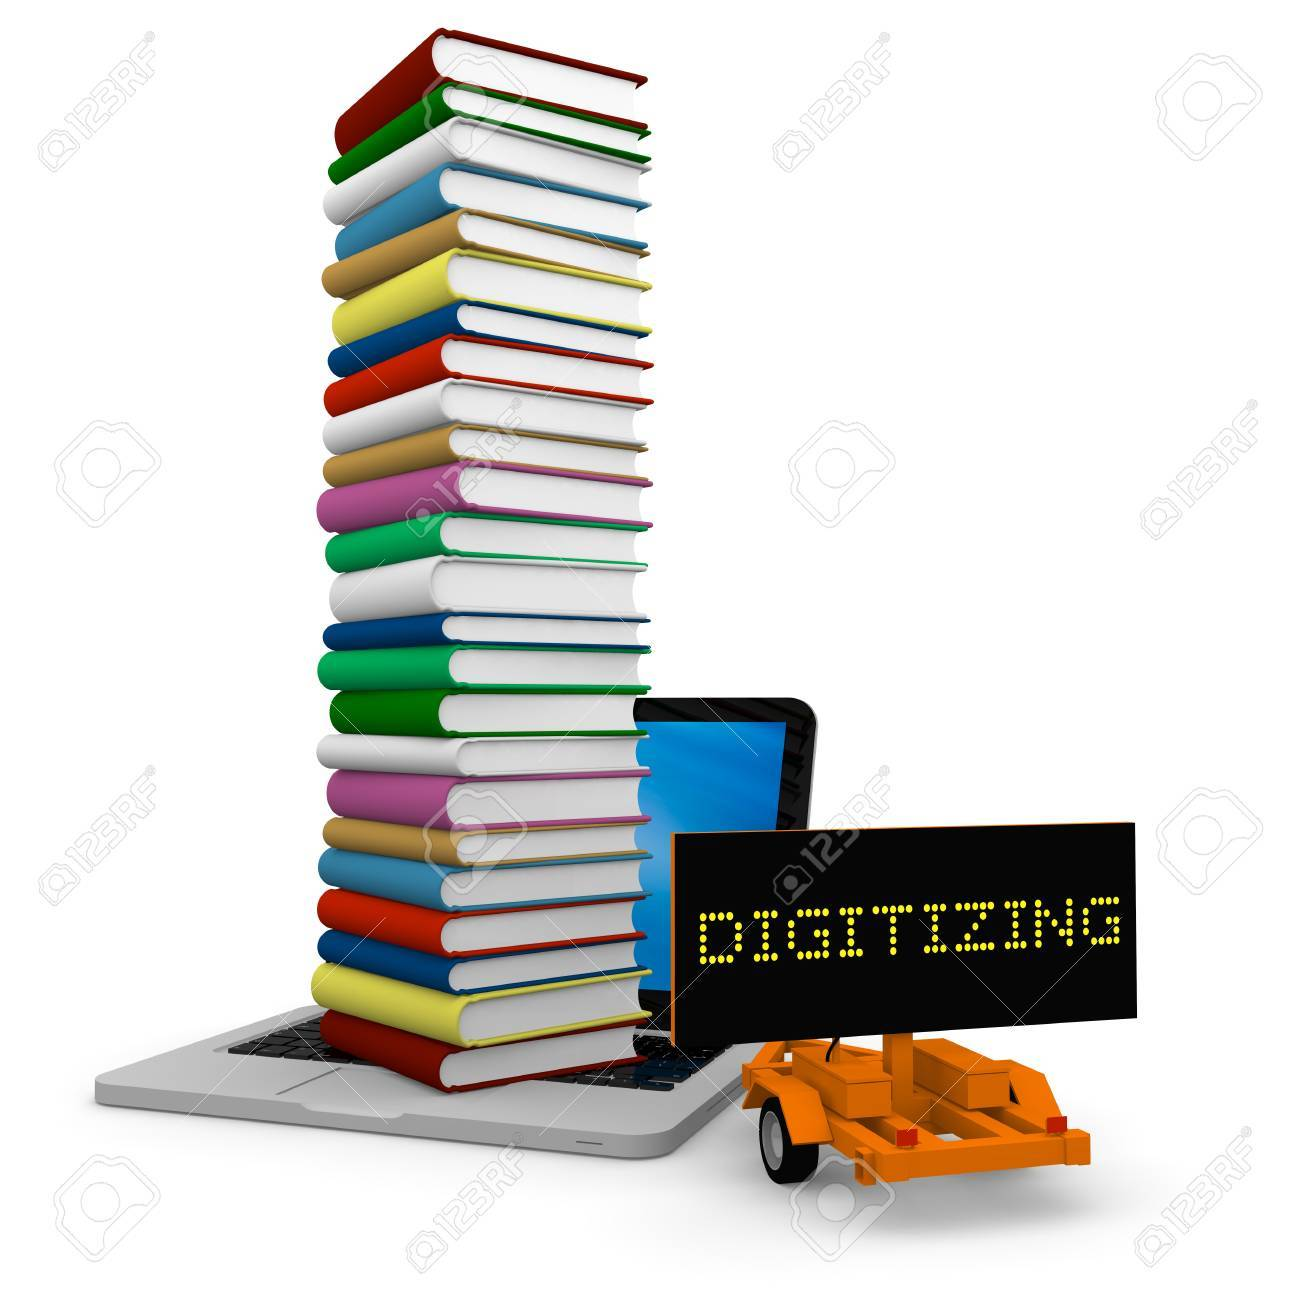 Tall pile of colourful books on the top of a laptop and a cart with sign DIGITIZING Stock Photo - 11941434